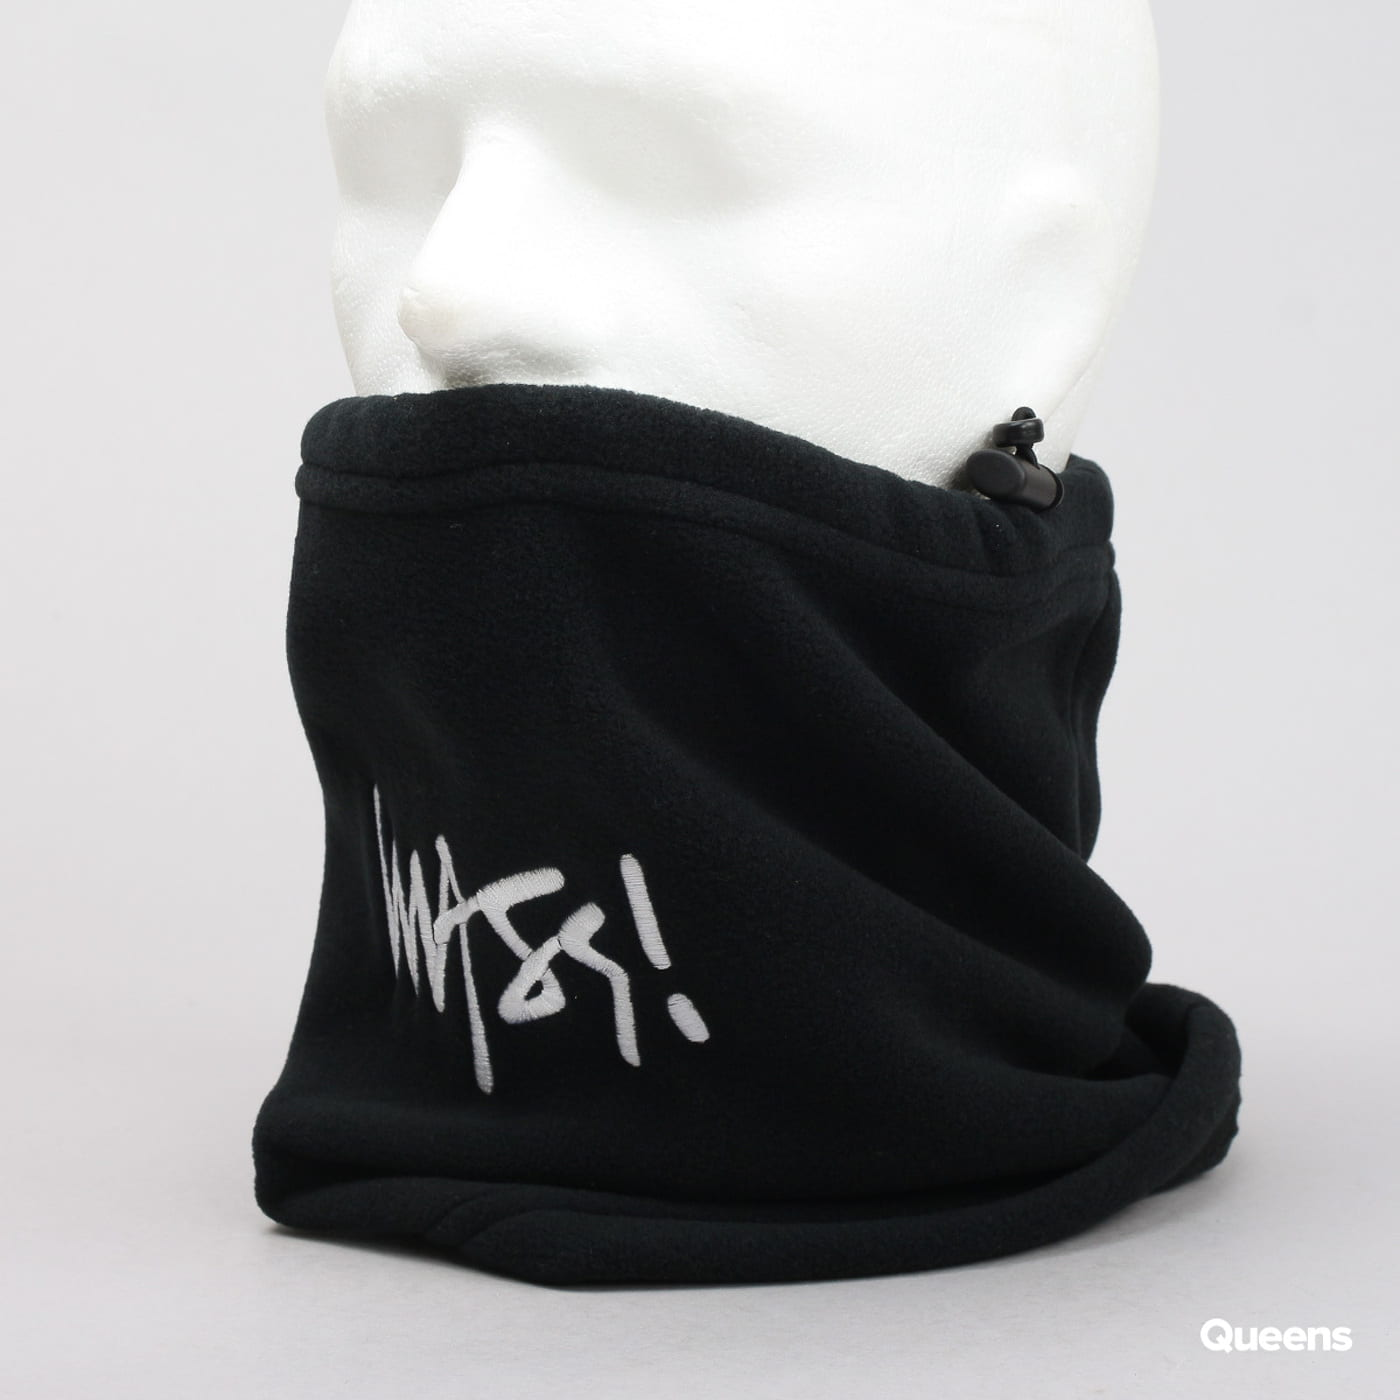 Mass DNM Neck Warmer Signature čierny